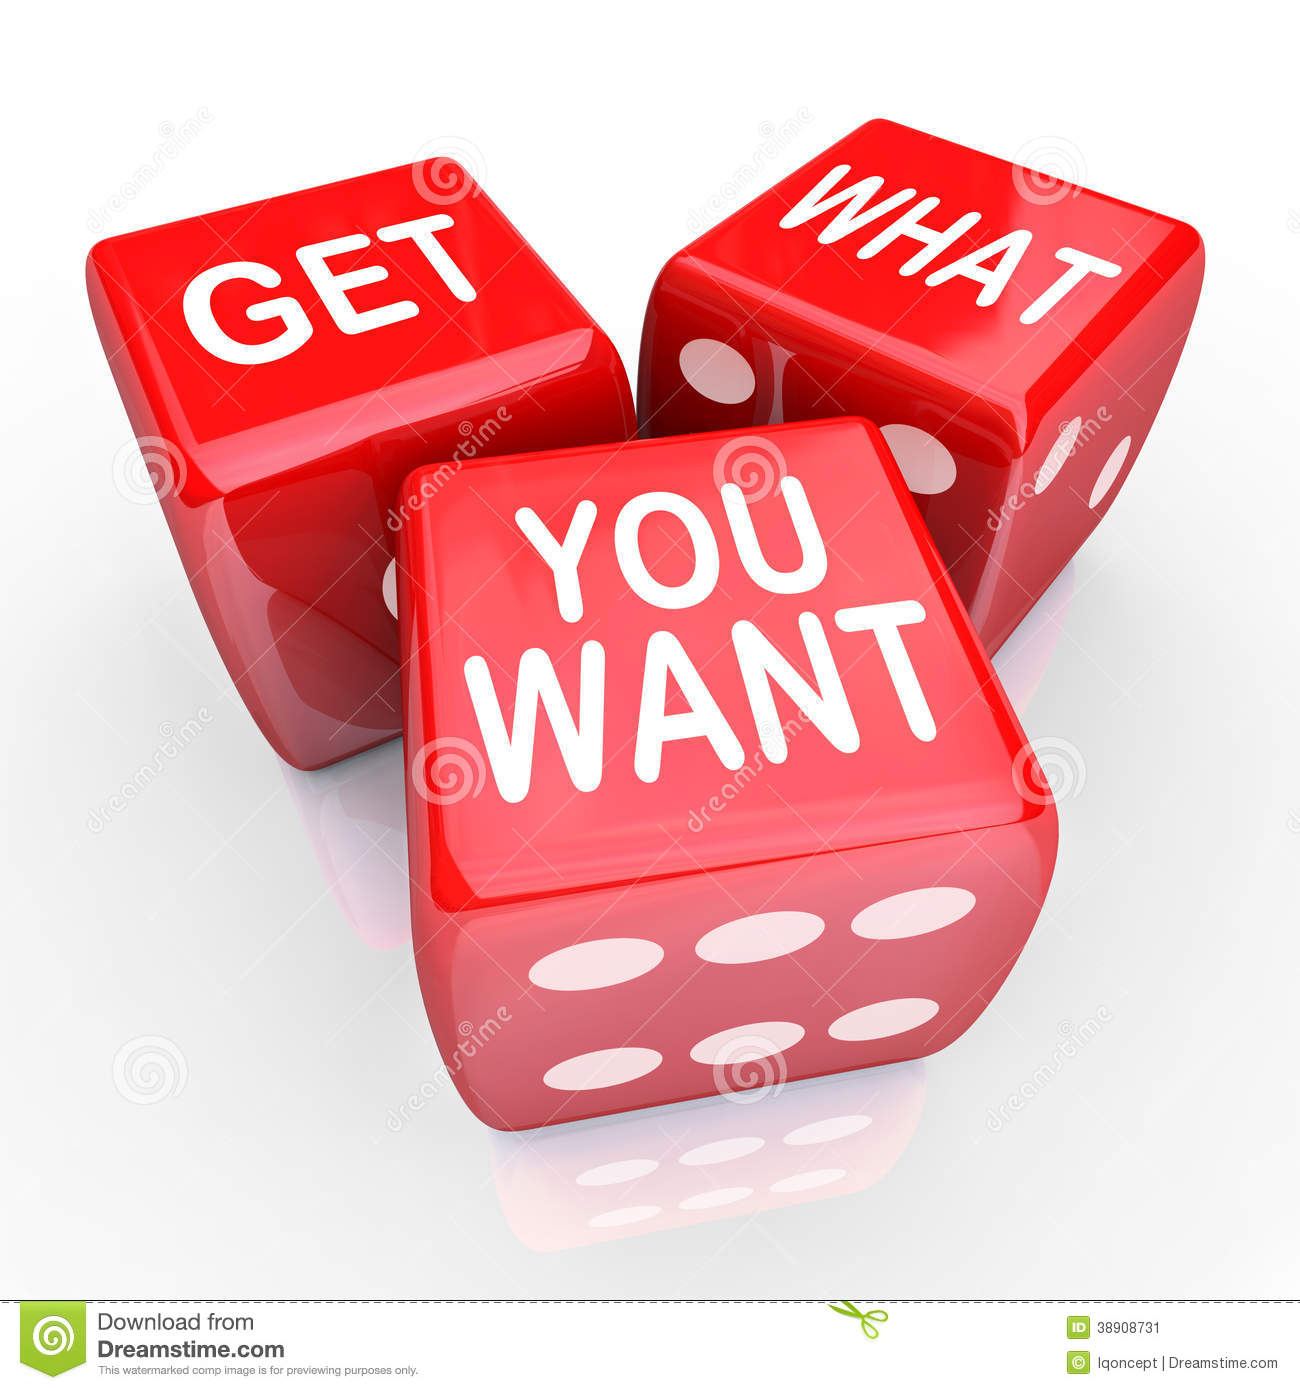 Get What You Want Dice Bet Gamble Risk